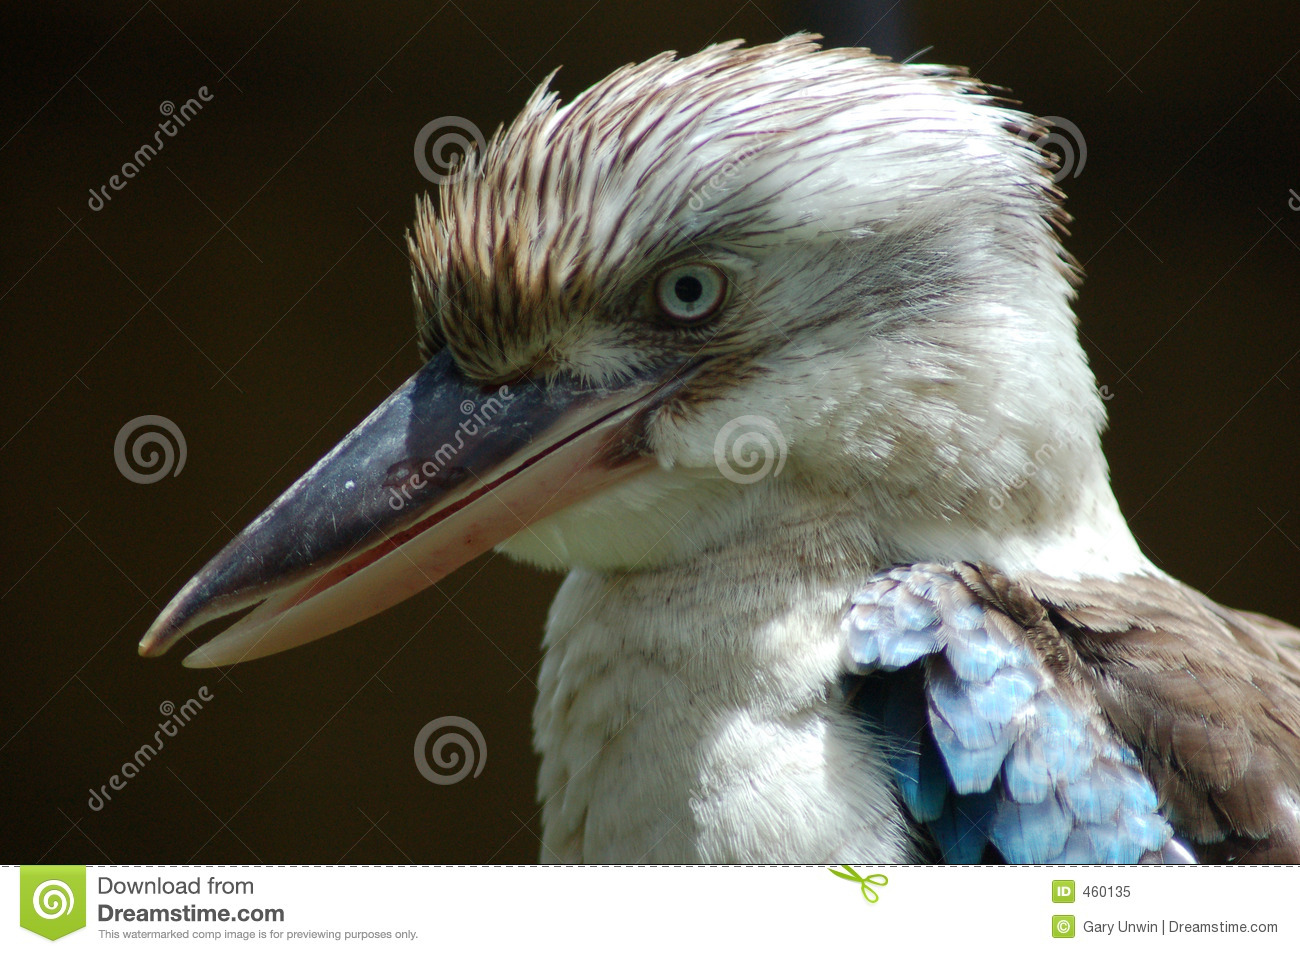 Mr. Kookaburra